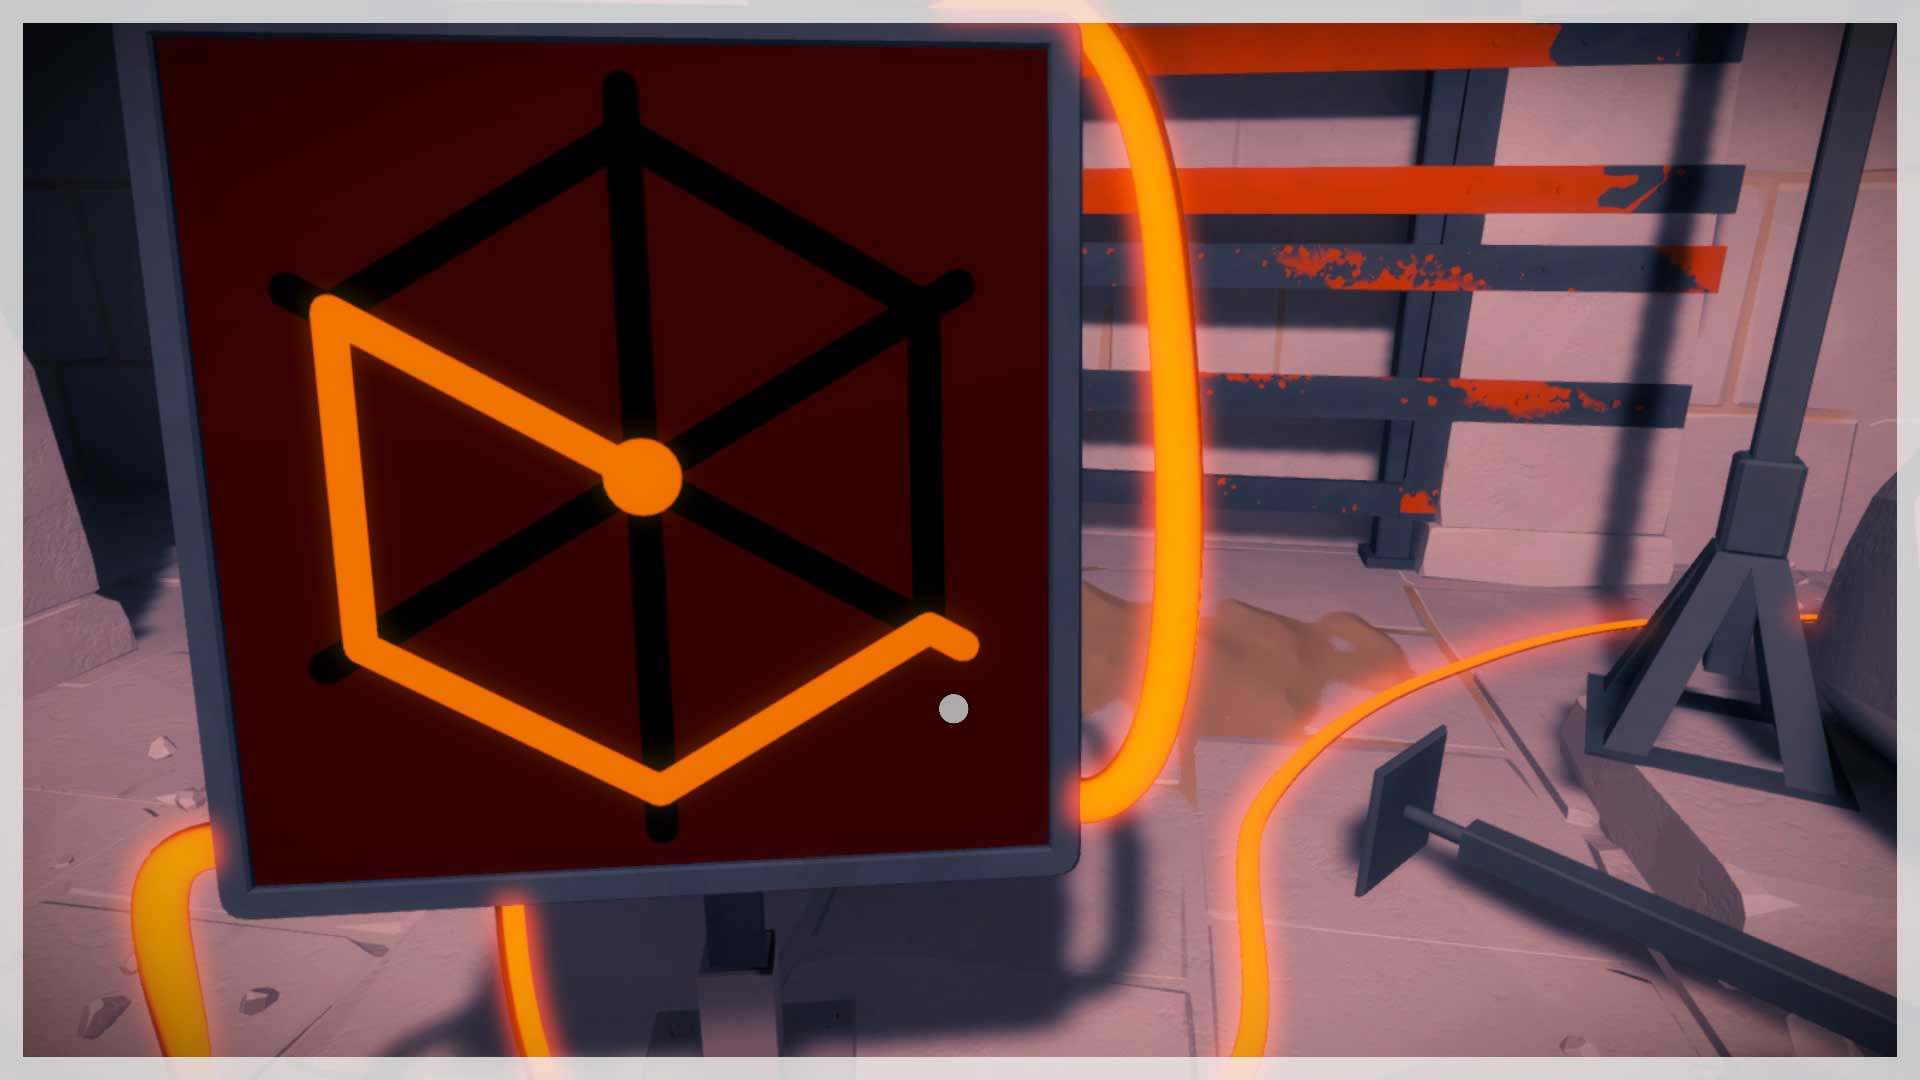 The Witness Desert Ruins Puzzle Solutions Vg247